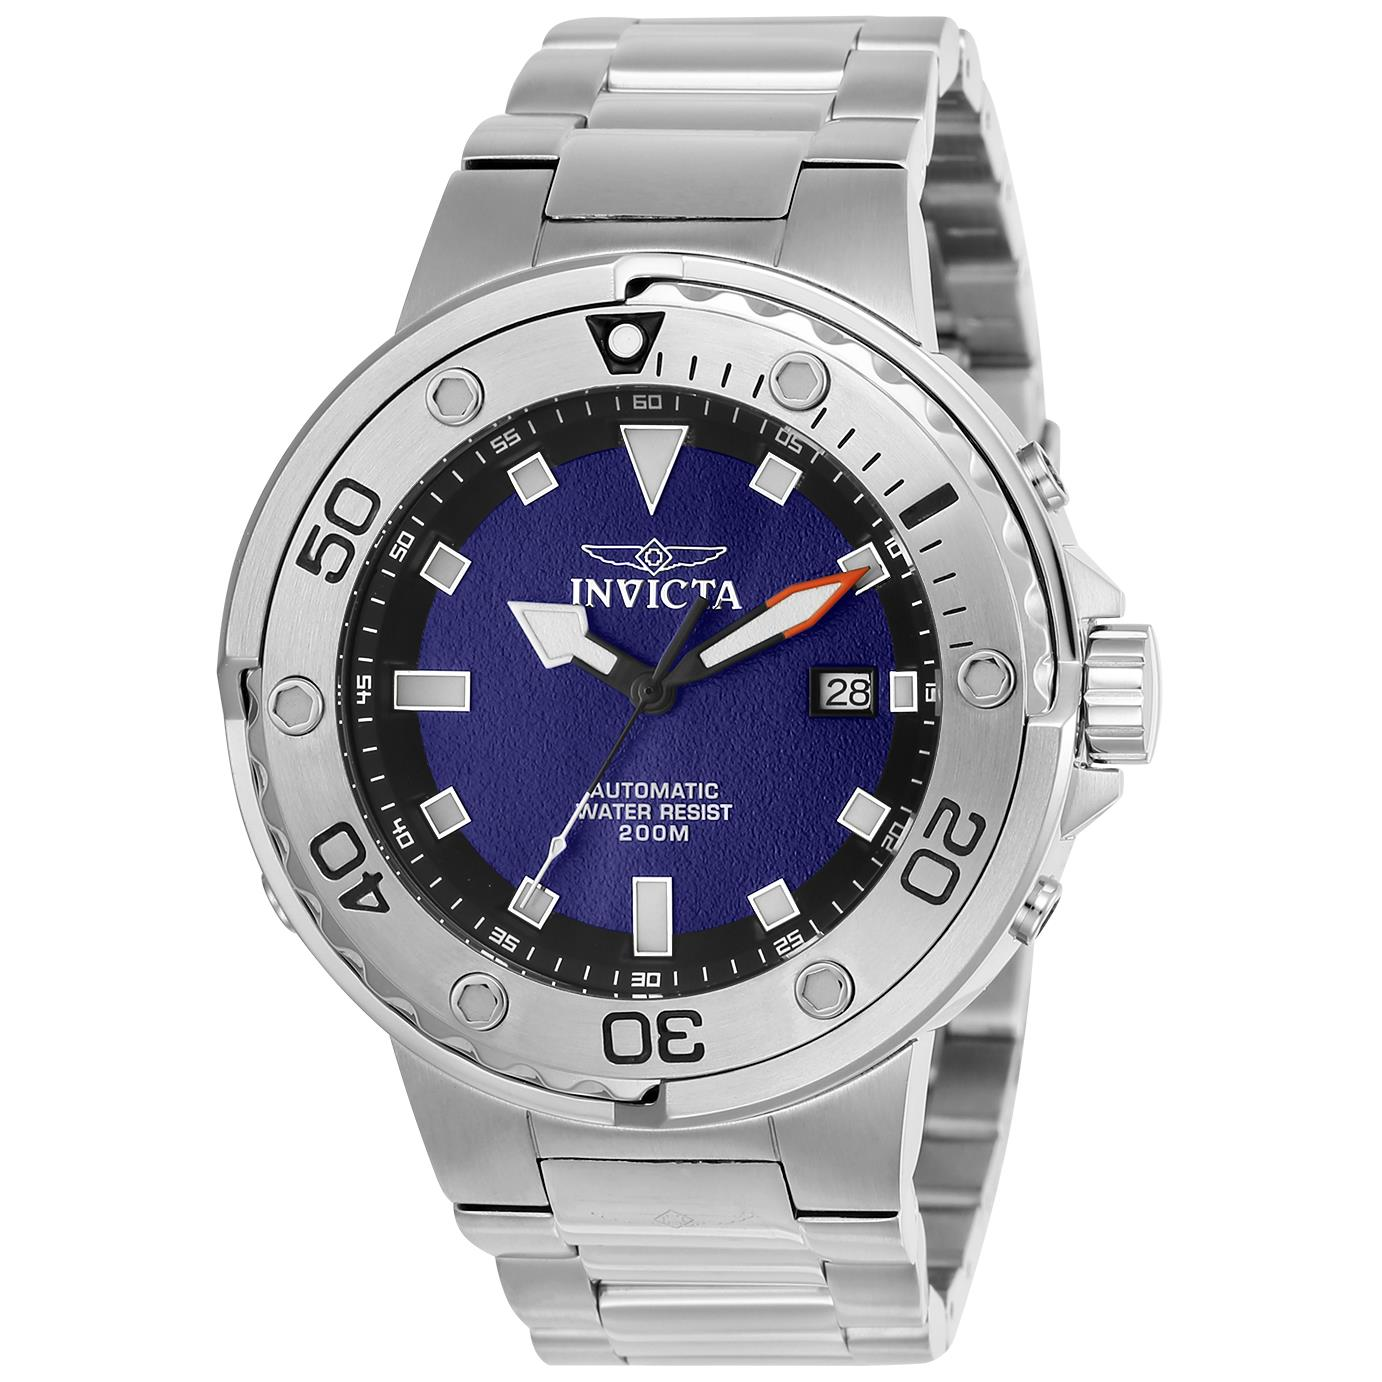 Men's Invicta Pro Diver Men's Stainless Steel Automatic Watch Black Silver Bracelet Automatic Stainless Steel